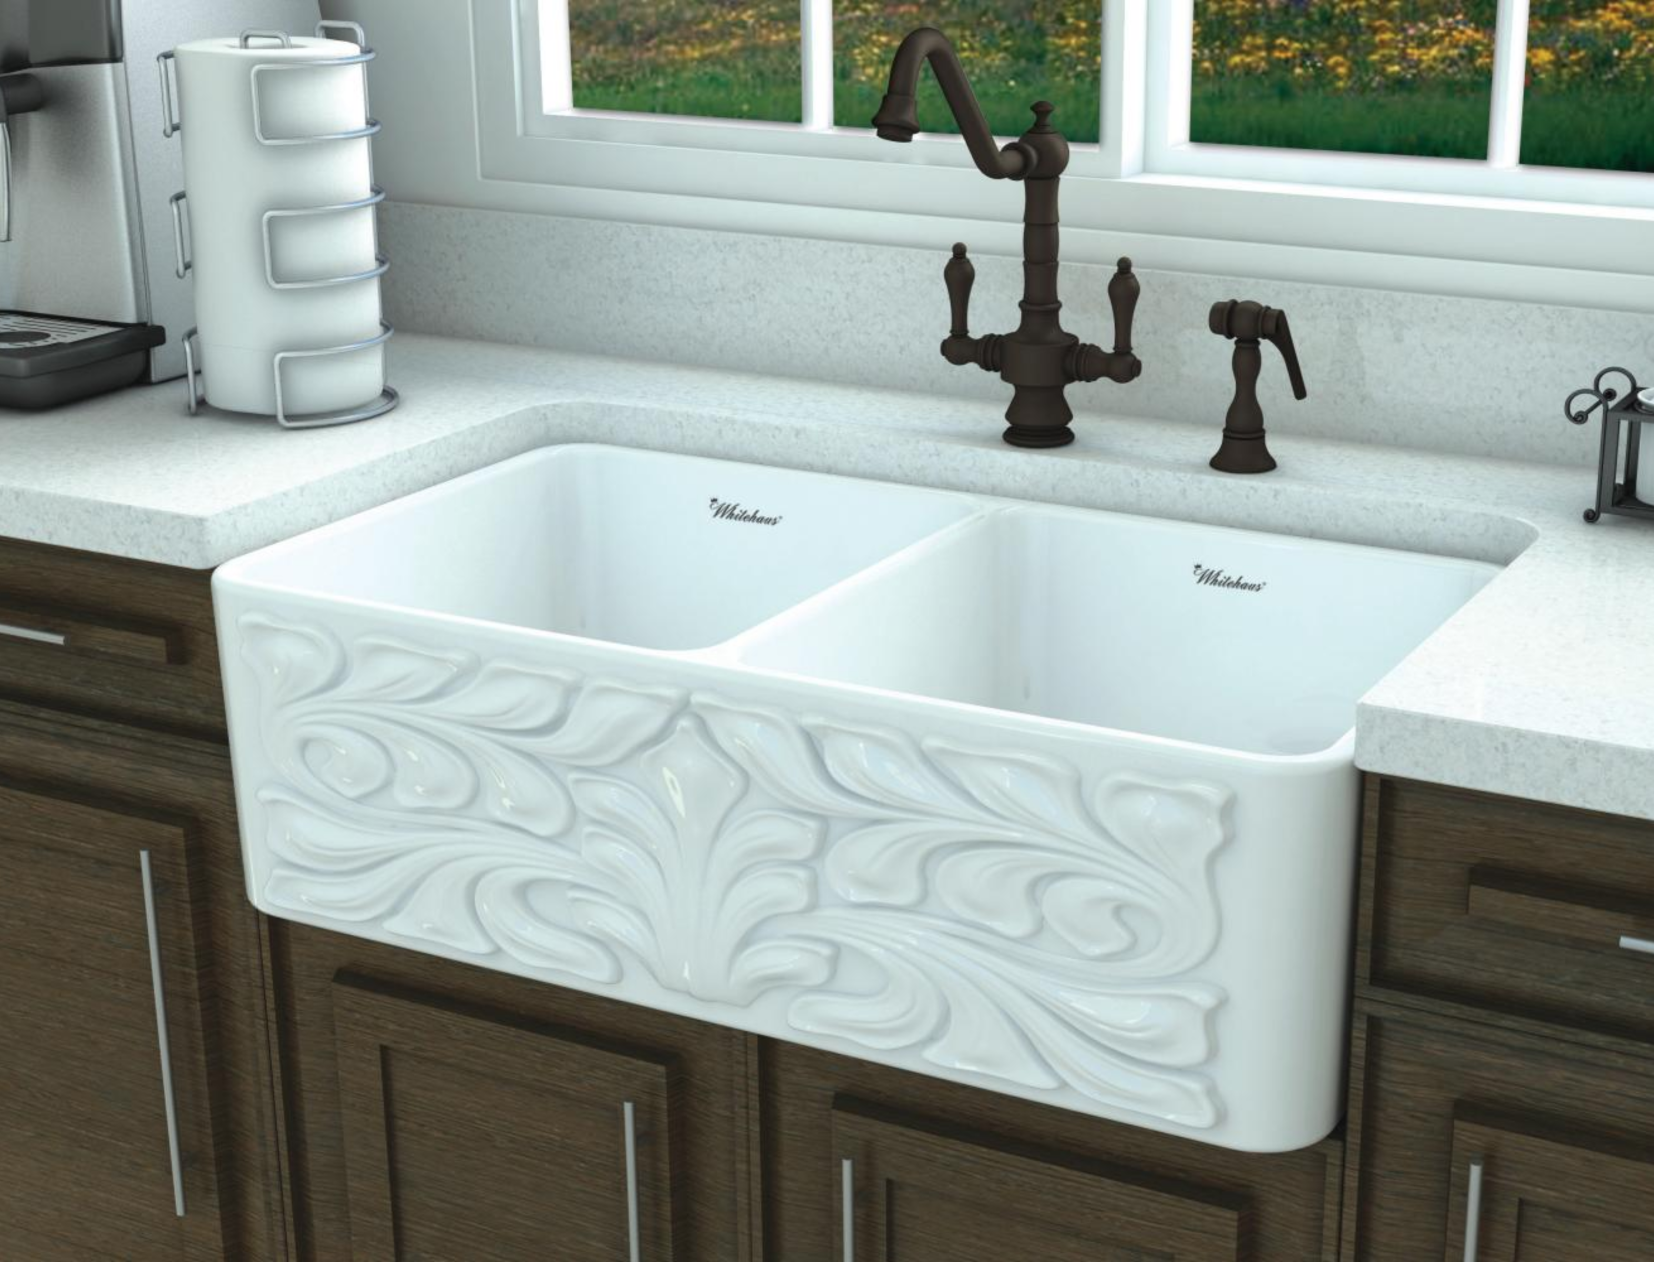 Whitehaus 33 Fireclay Double Bowl Farmhouse Apron Sink White Whflgo3318 White In 2020 Farmhouse Apron Sink Fireclay Farmhouse Sink Farmhouse Aprons